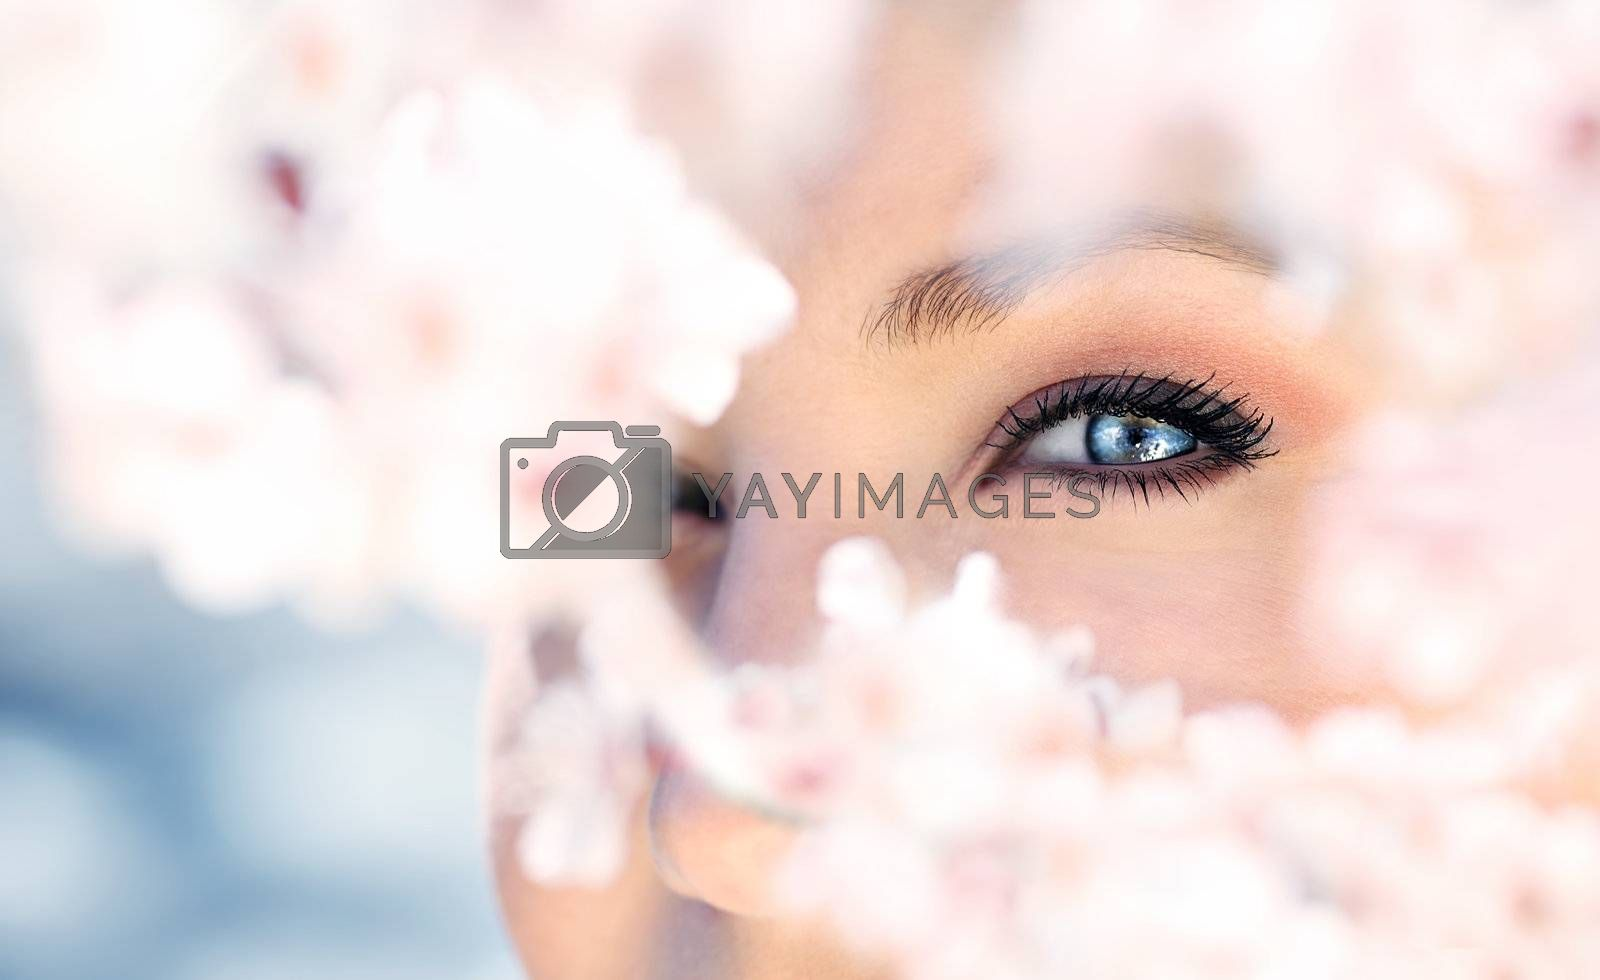 Beautiful abstract blue eye surrounded with fresh flowers, macro portrait outdoor